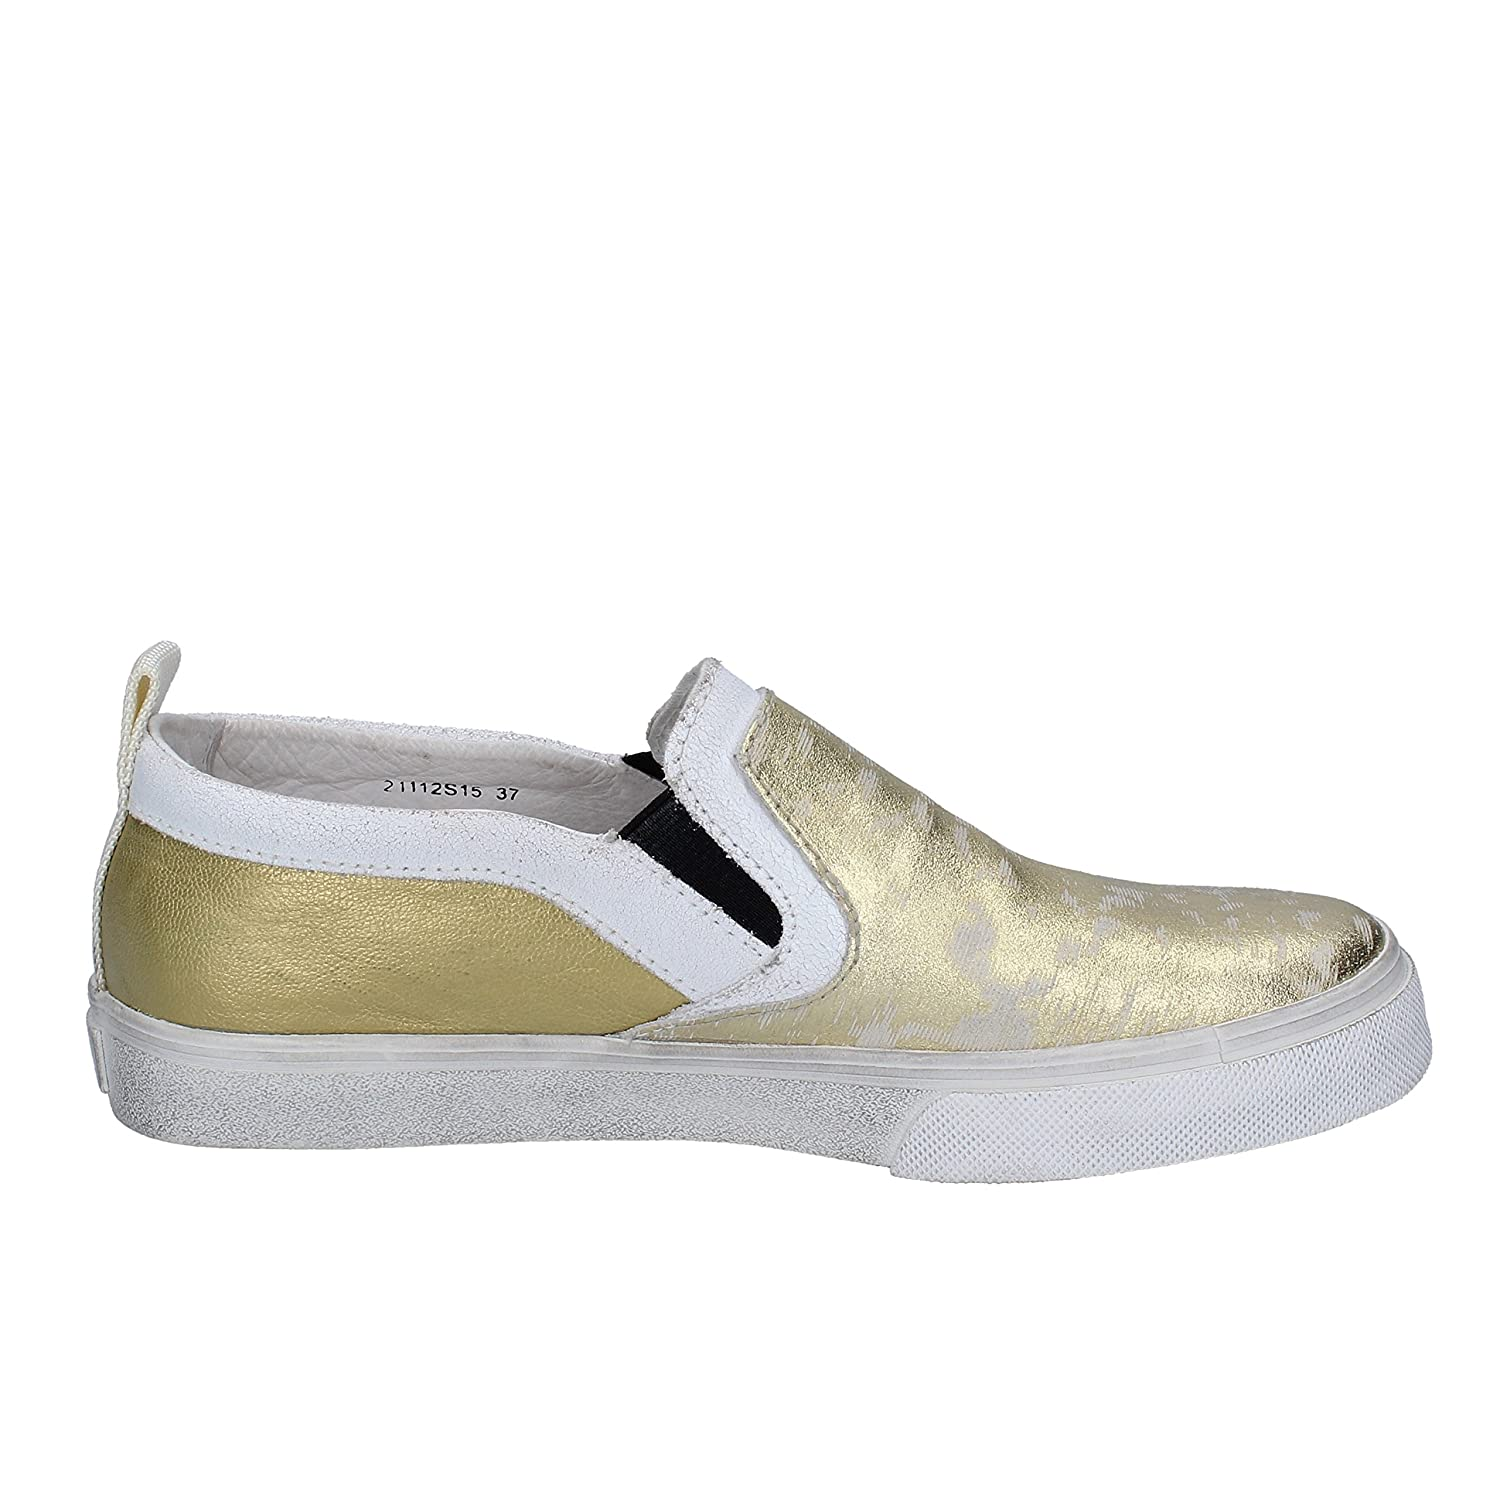 CRIME Loafers-Shoes Womens Leather Gold